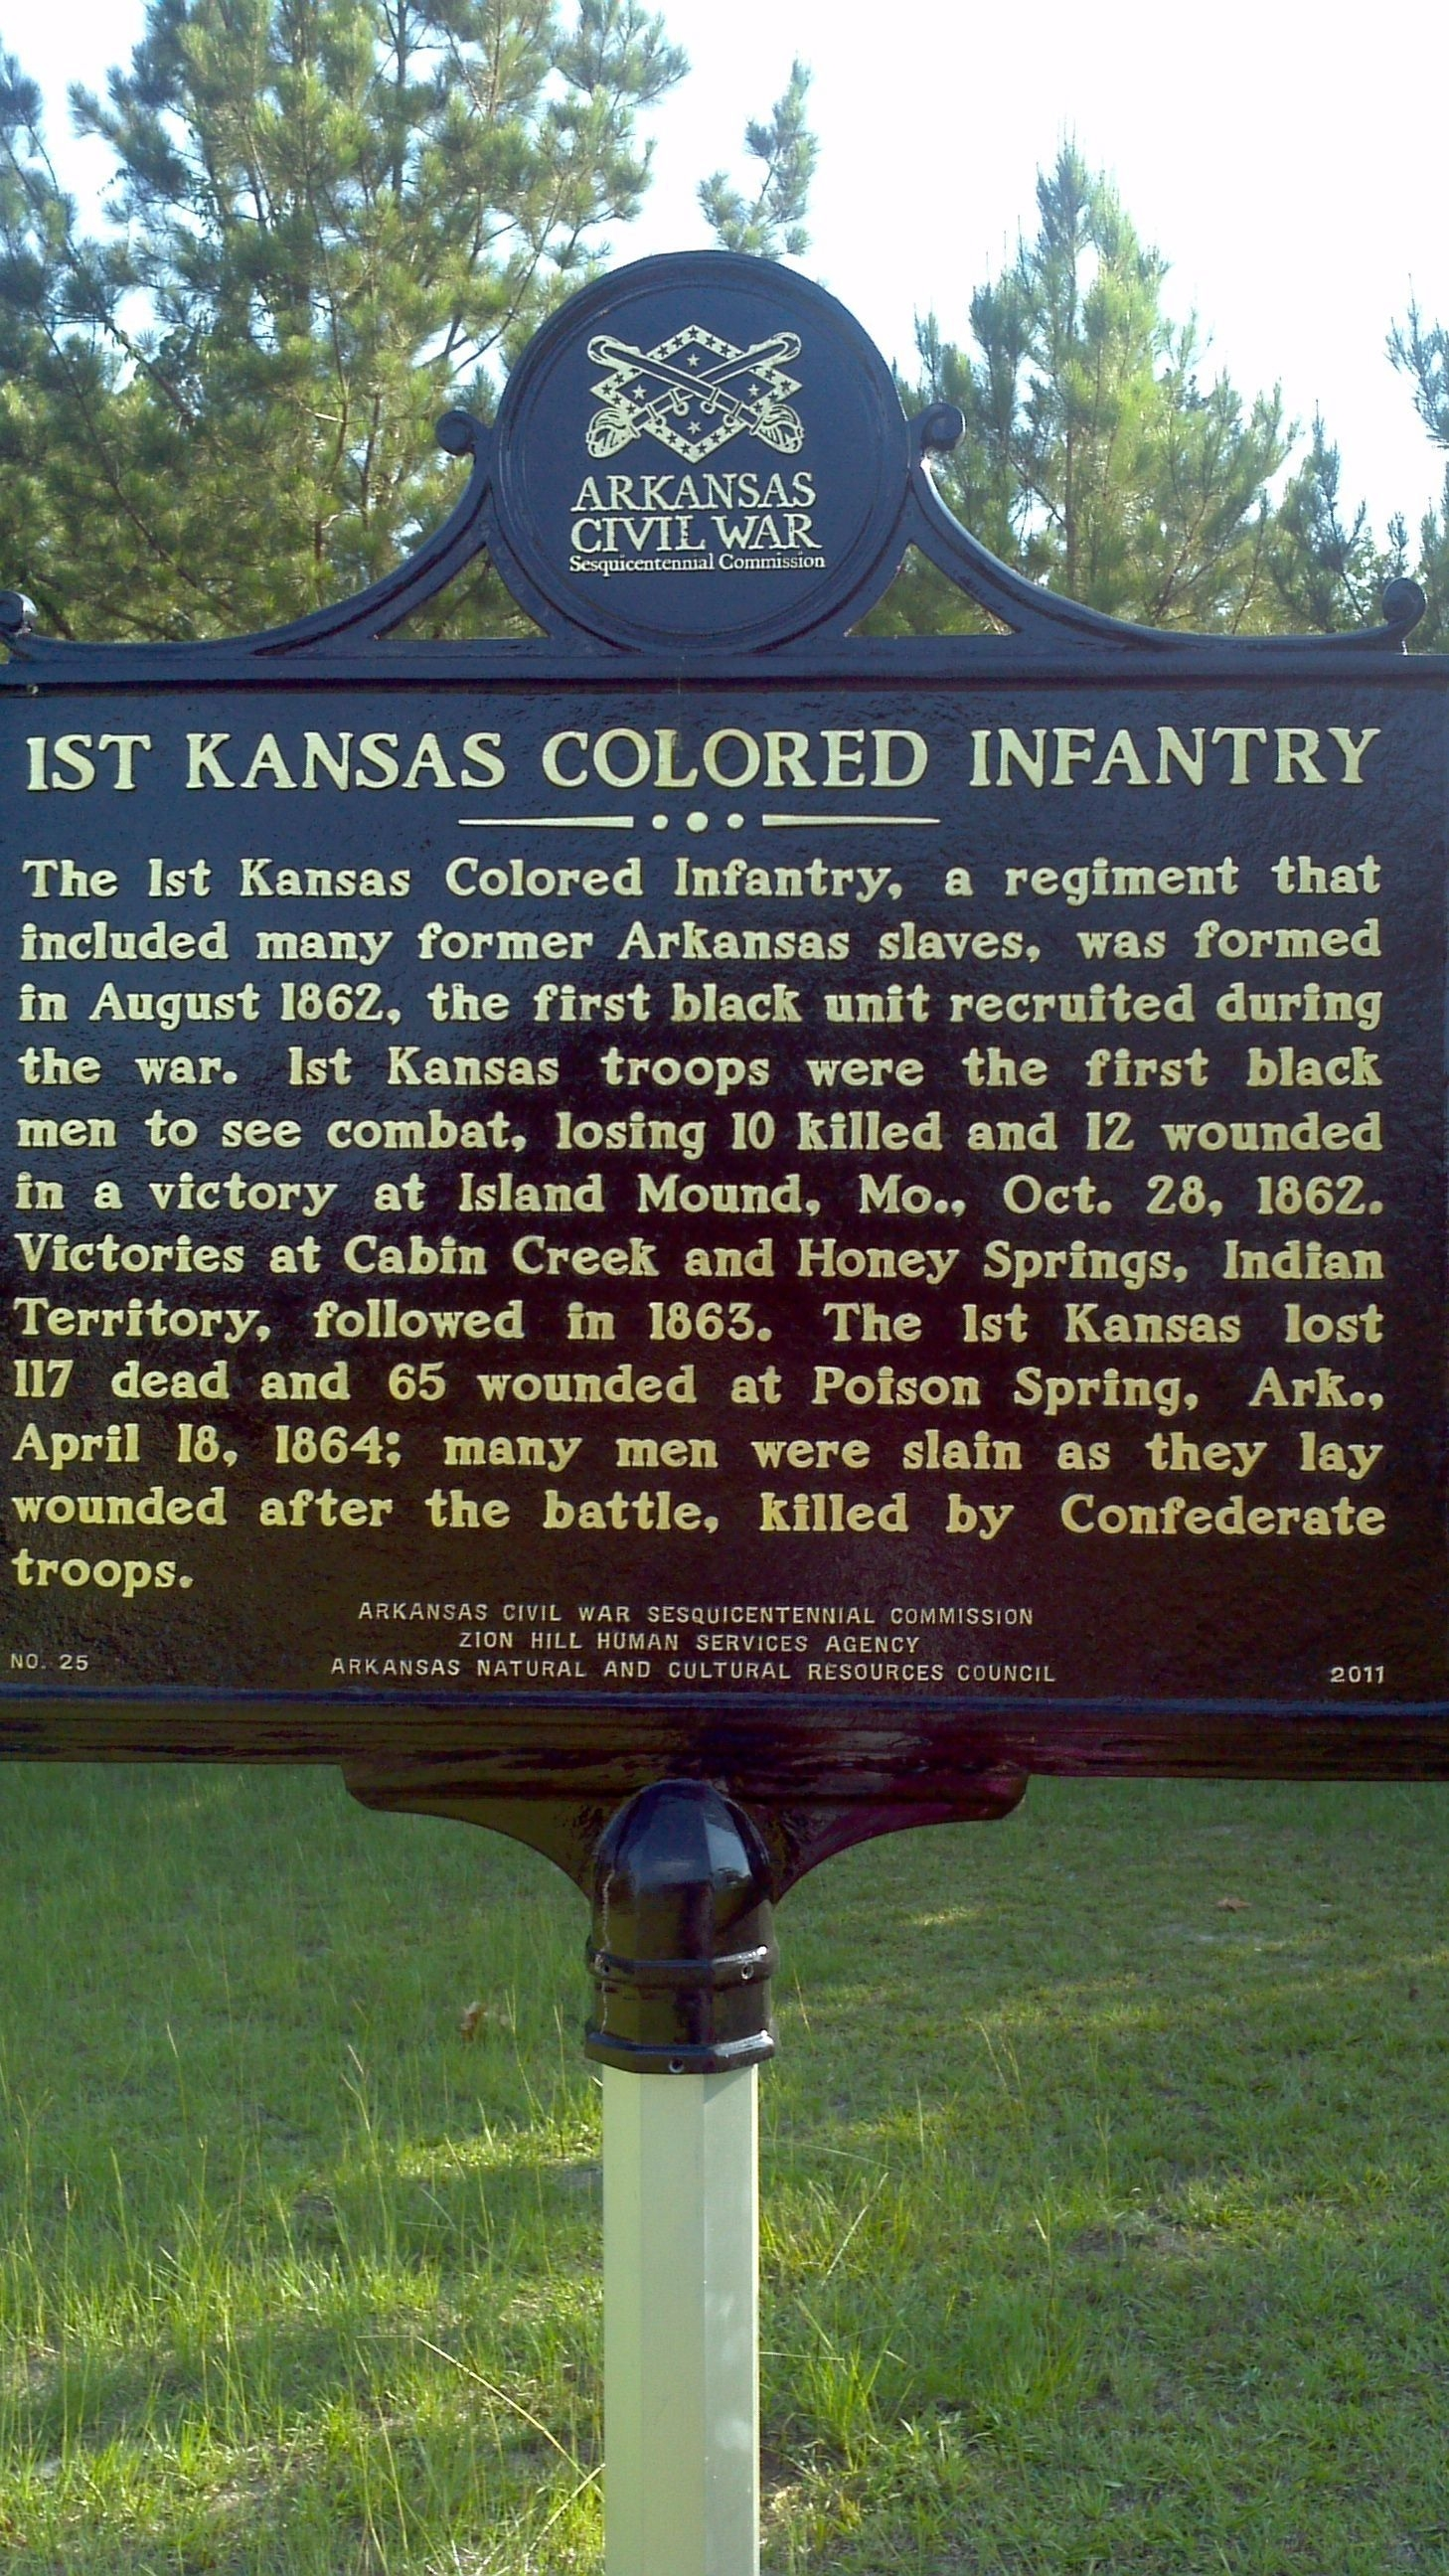 The marker of the 1st Kansas Colored Infantry